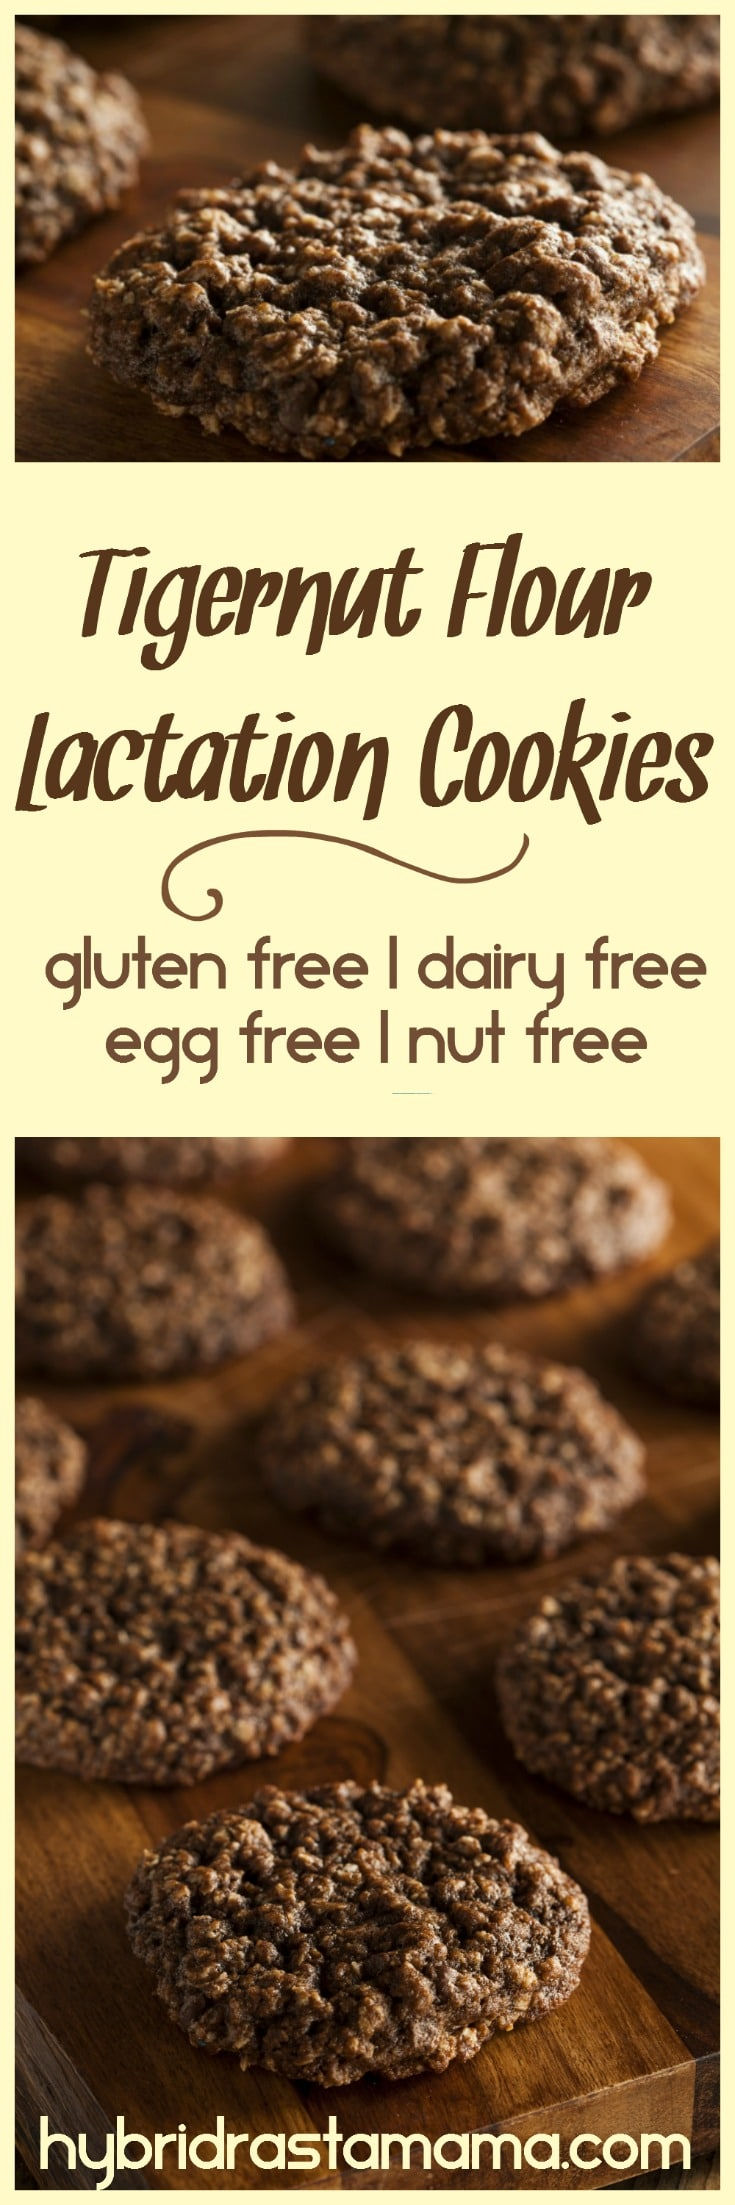 These gluten free, dairy free, egg free, nut free, soy free lactation cookies are the nourishing and delicious answer to low milk supply. Made without junky ingredients, you don't have to feel guilty about eating all the cookies needed to boost that milk production! From HybridRastaMama.com